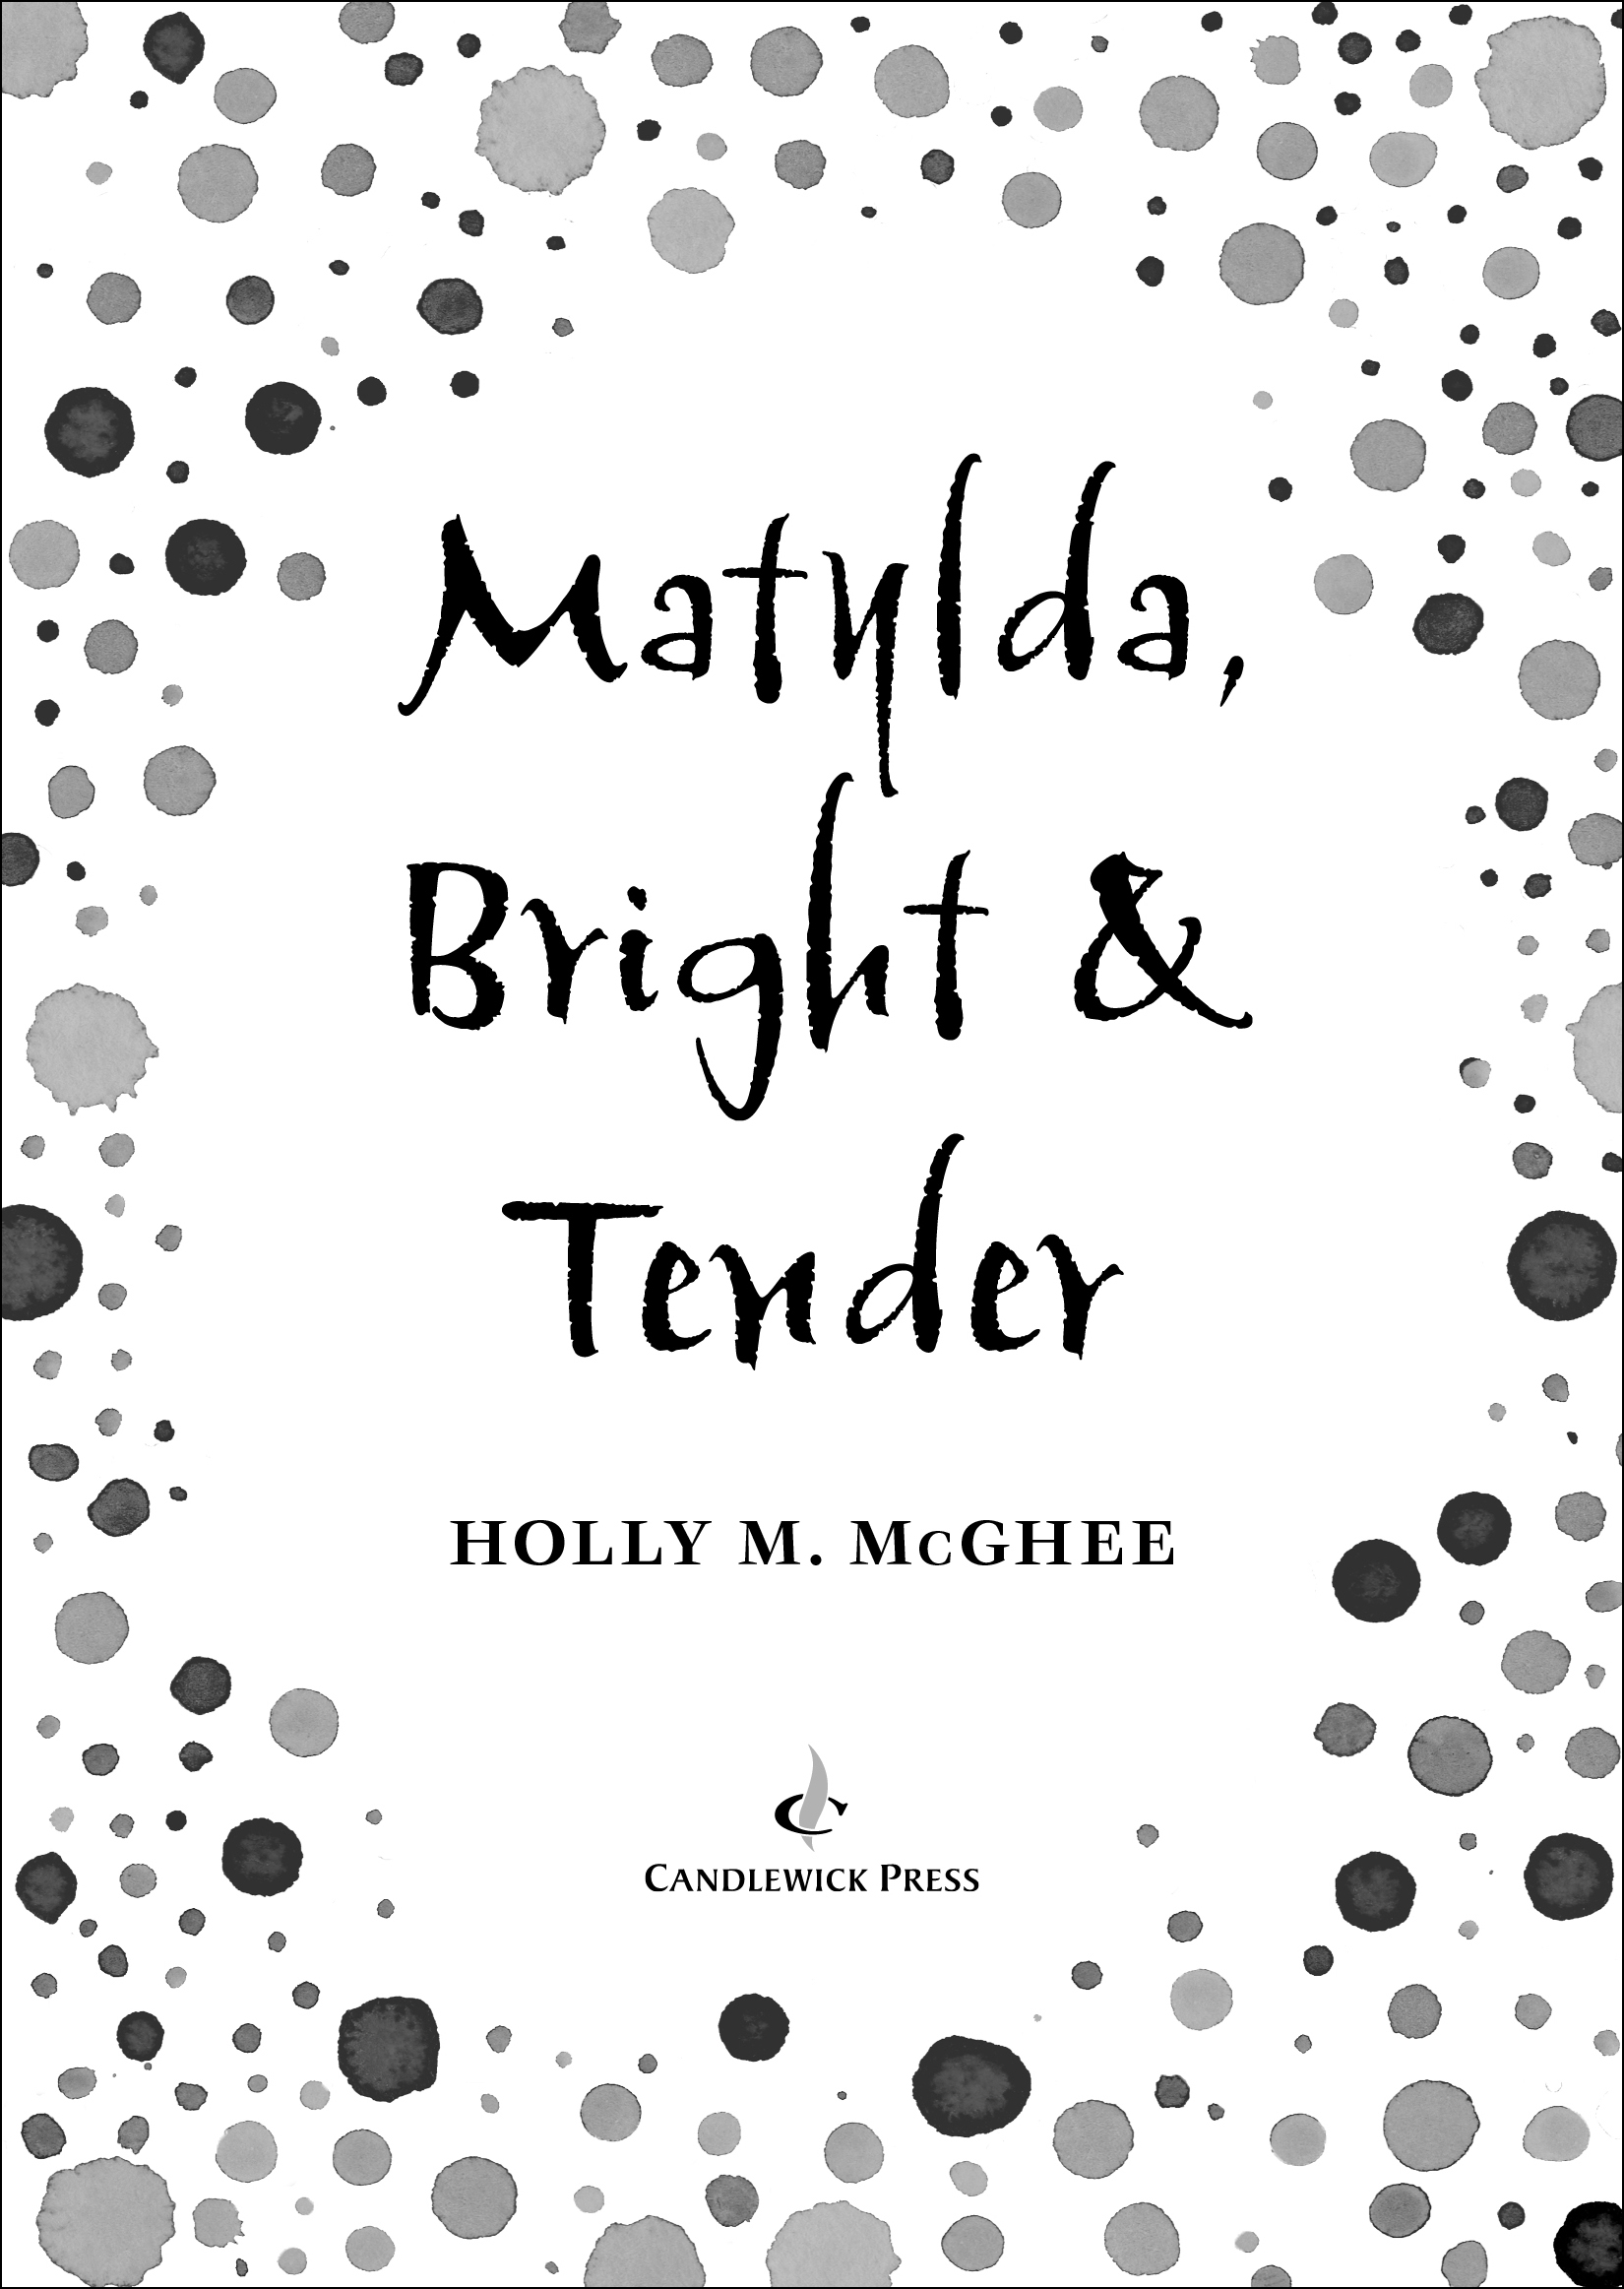 Title page for MATYLDA, BRIGHT AND TENDER